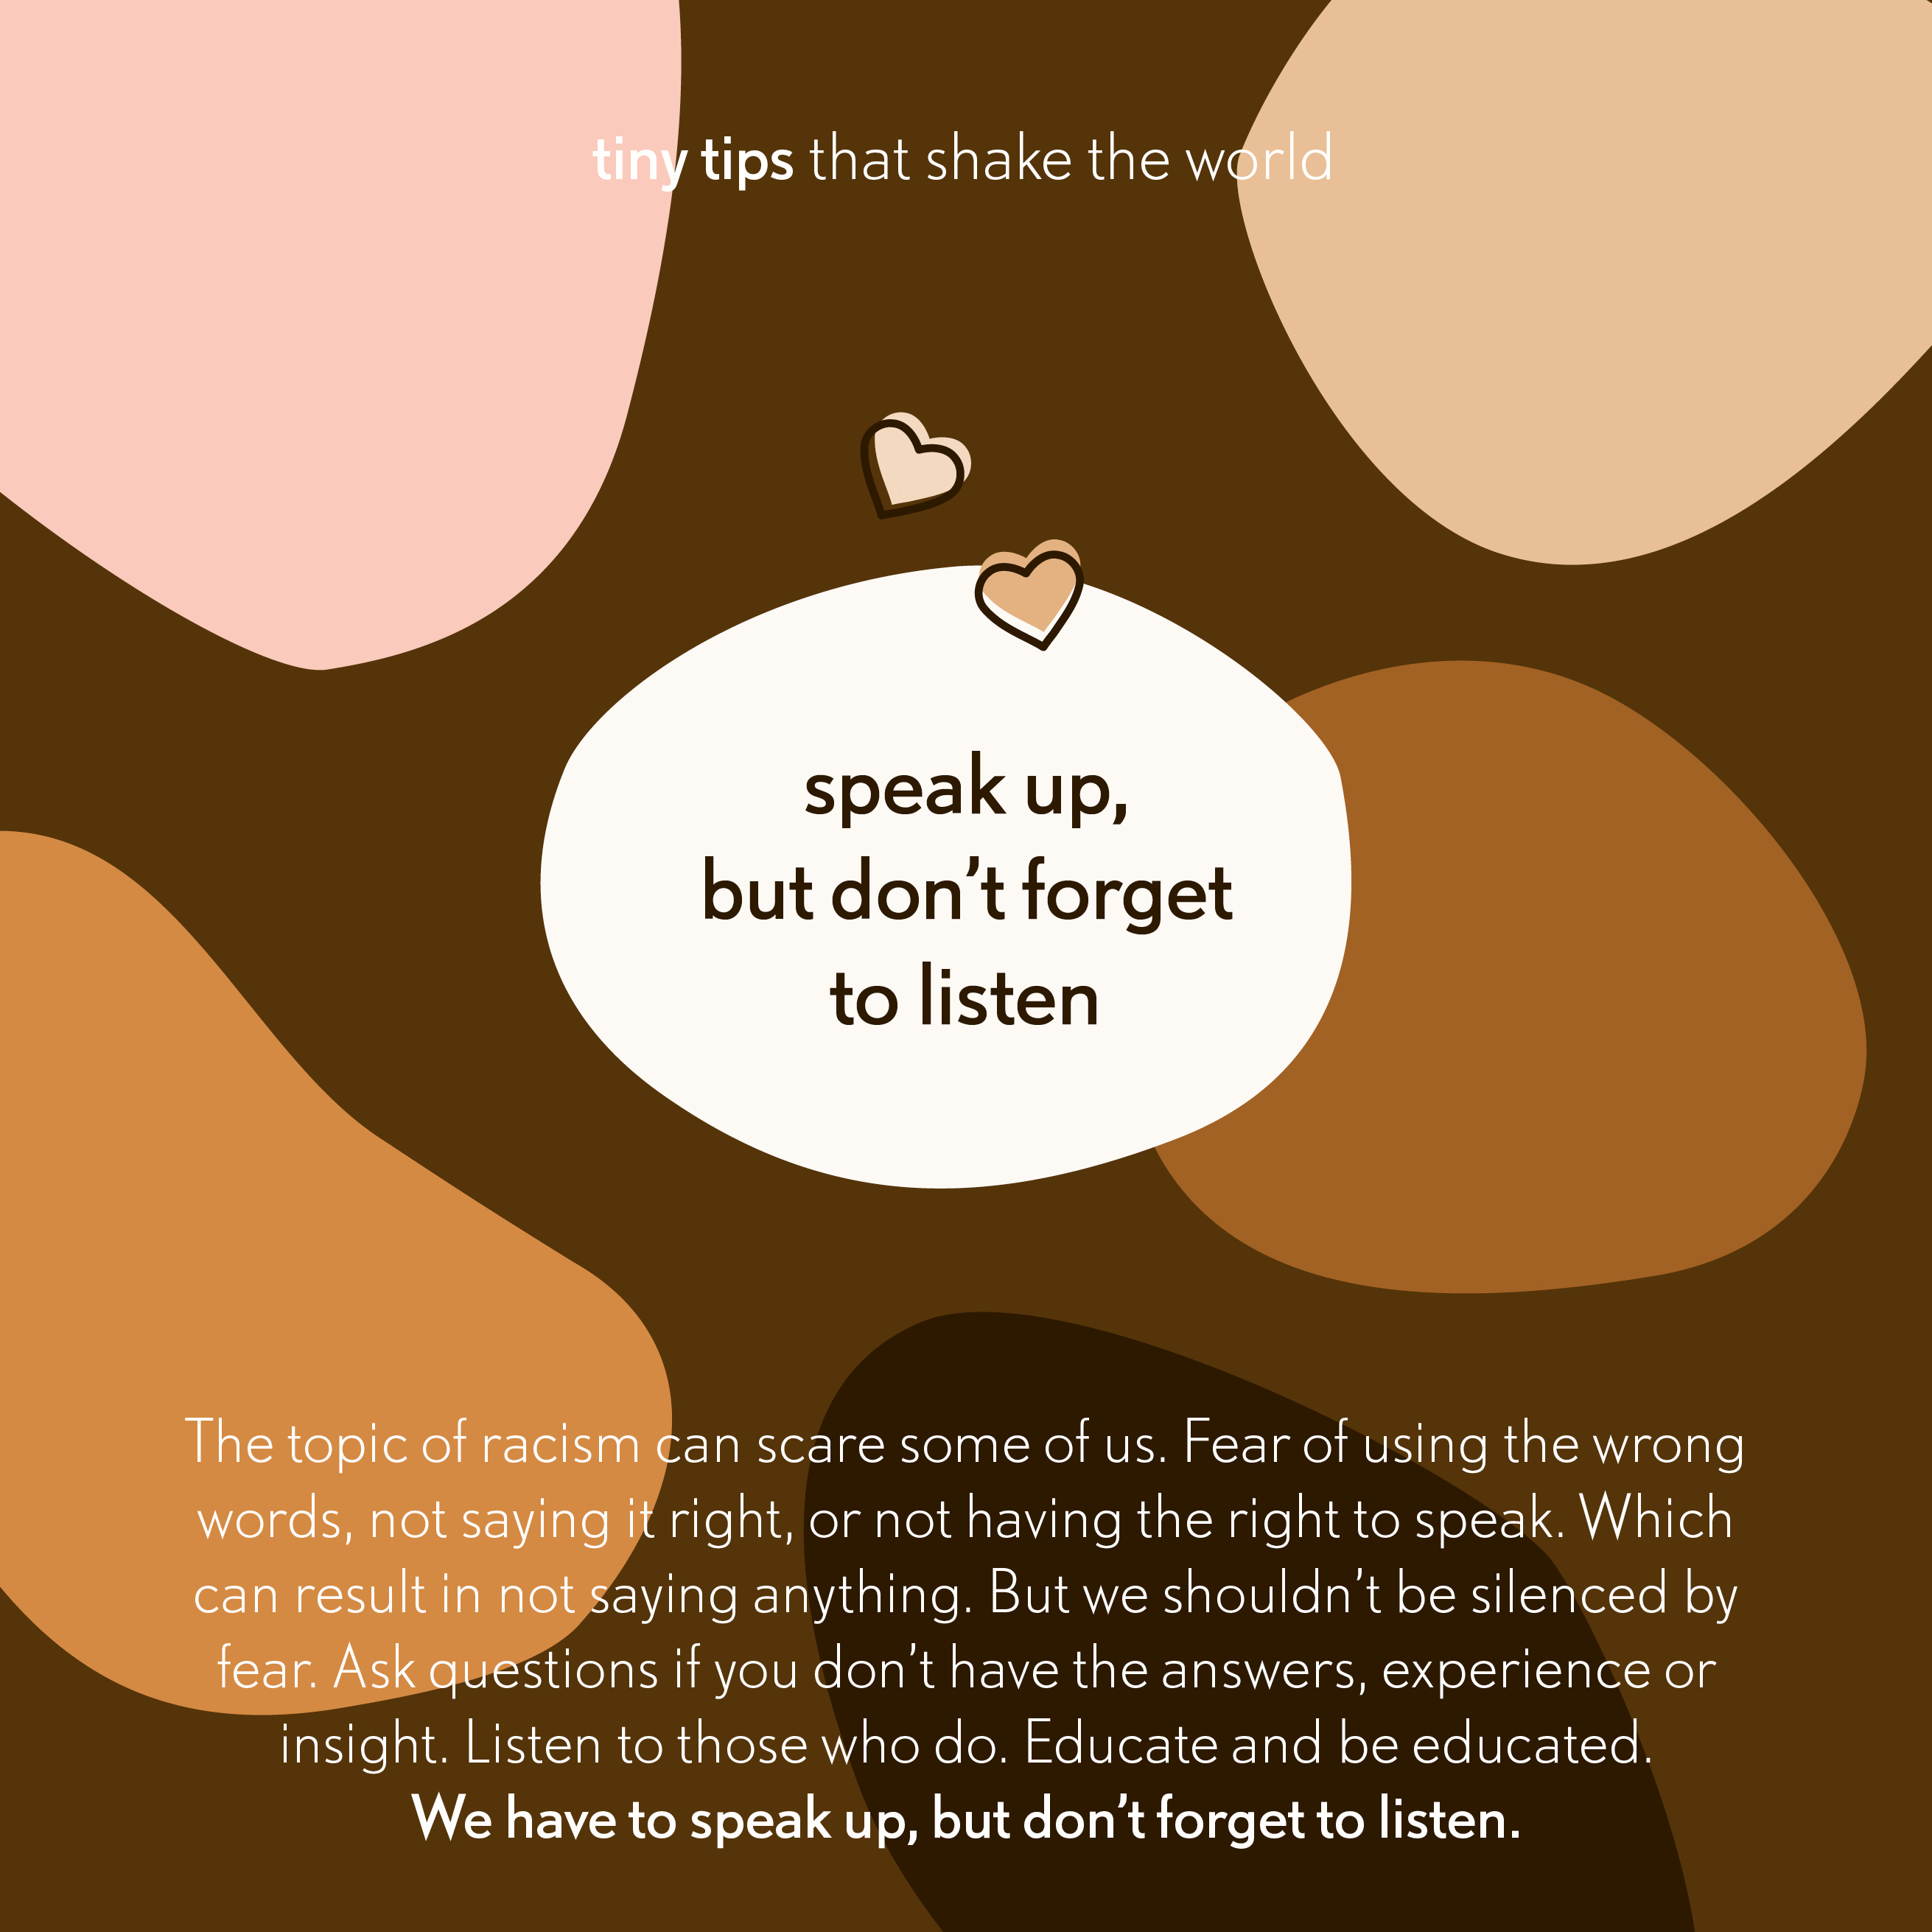 Speak up, but don't forget to listen - Tiny tips that shake the world